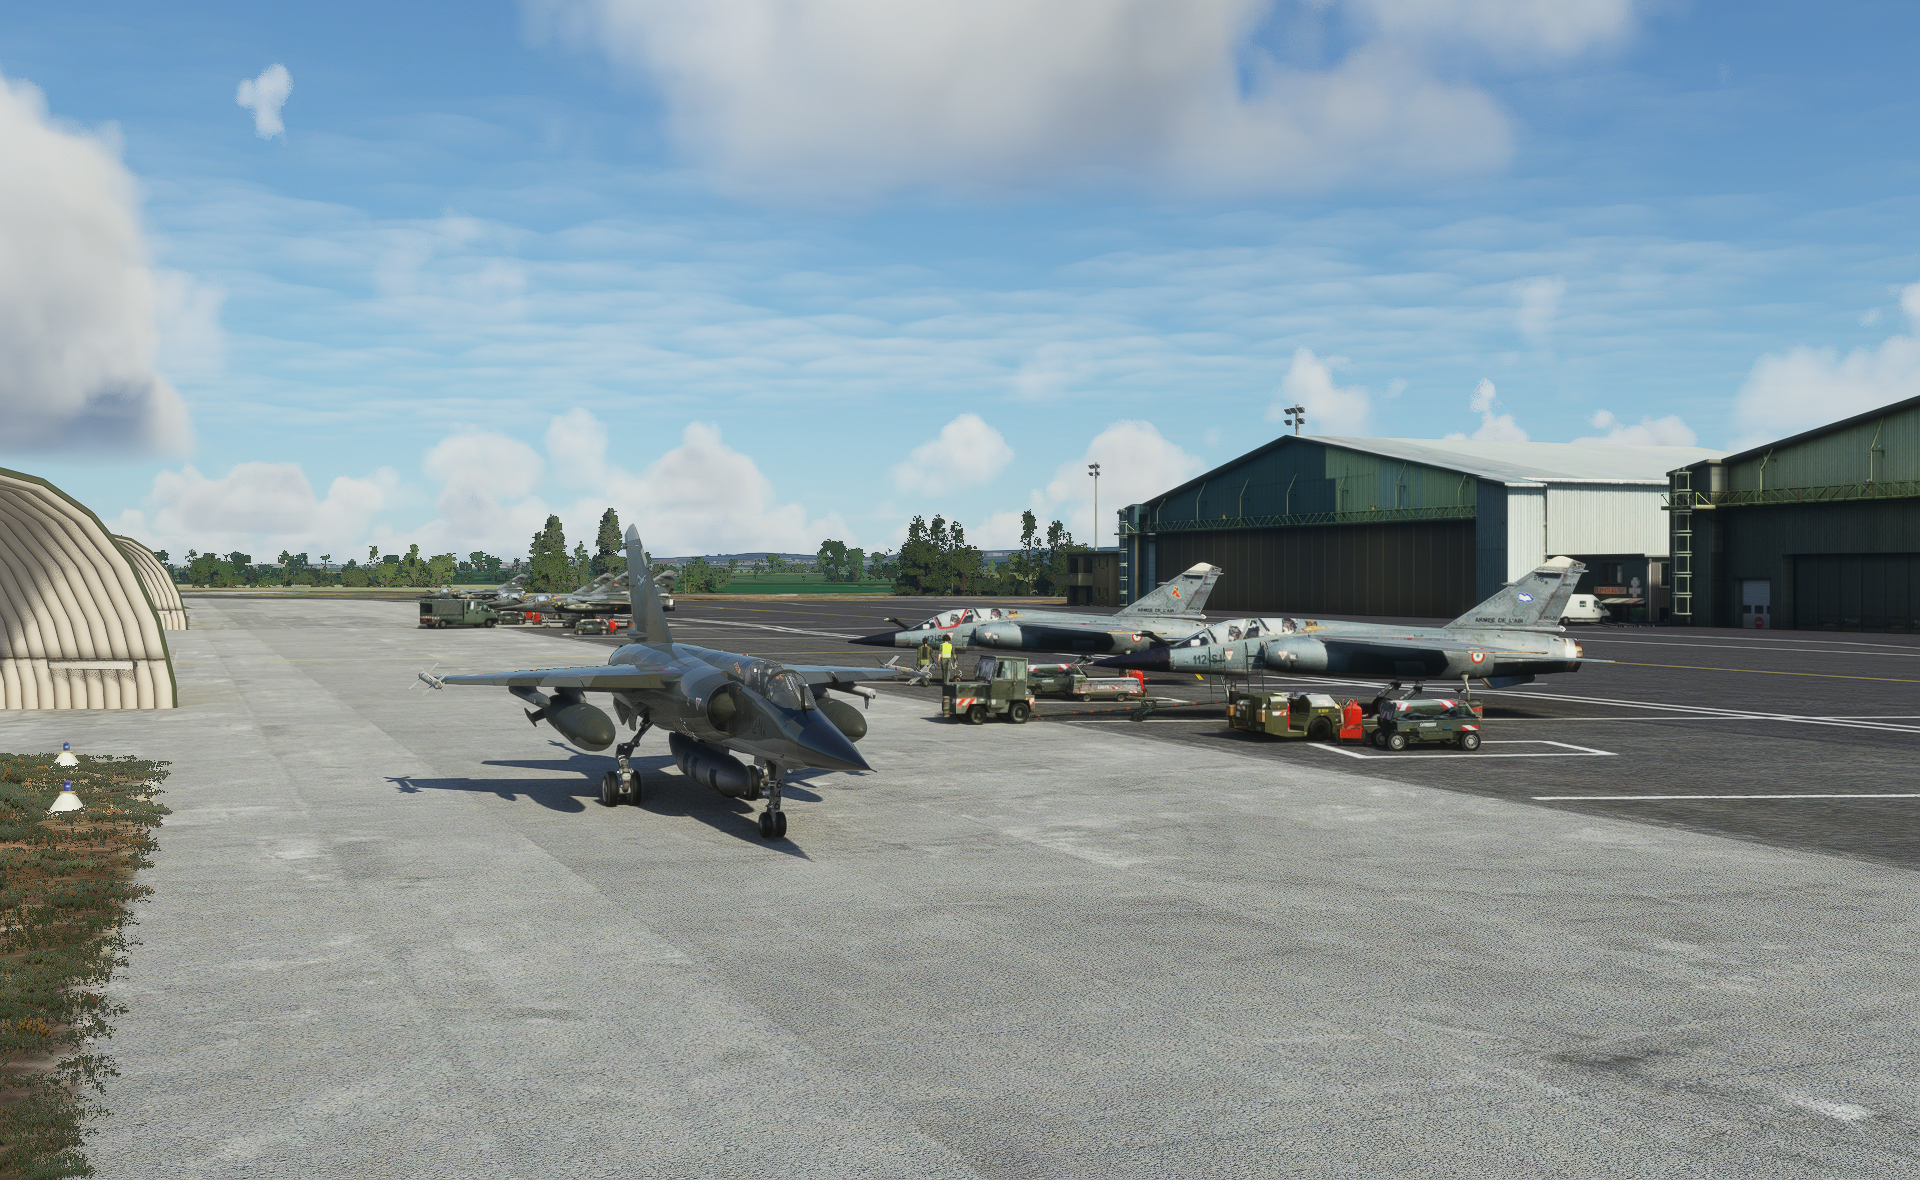 SKYDESIGNERS - FRENCH AIRBASE 112 REIMS-CHAMPAGNE MSFS